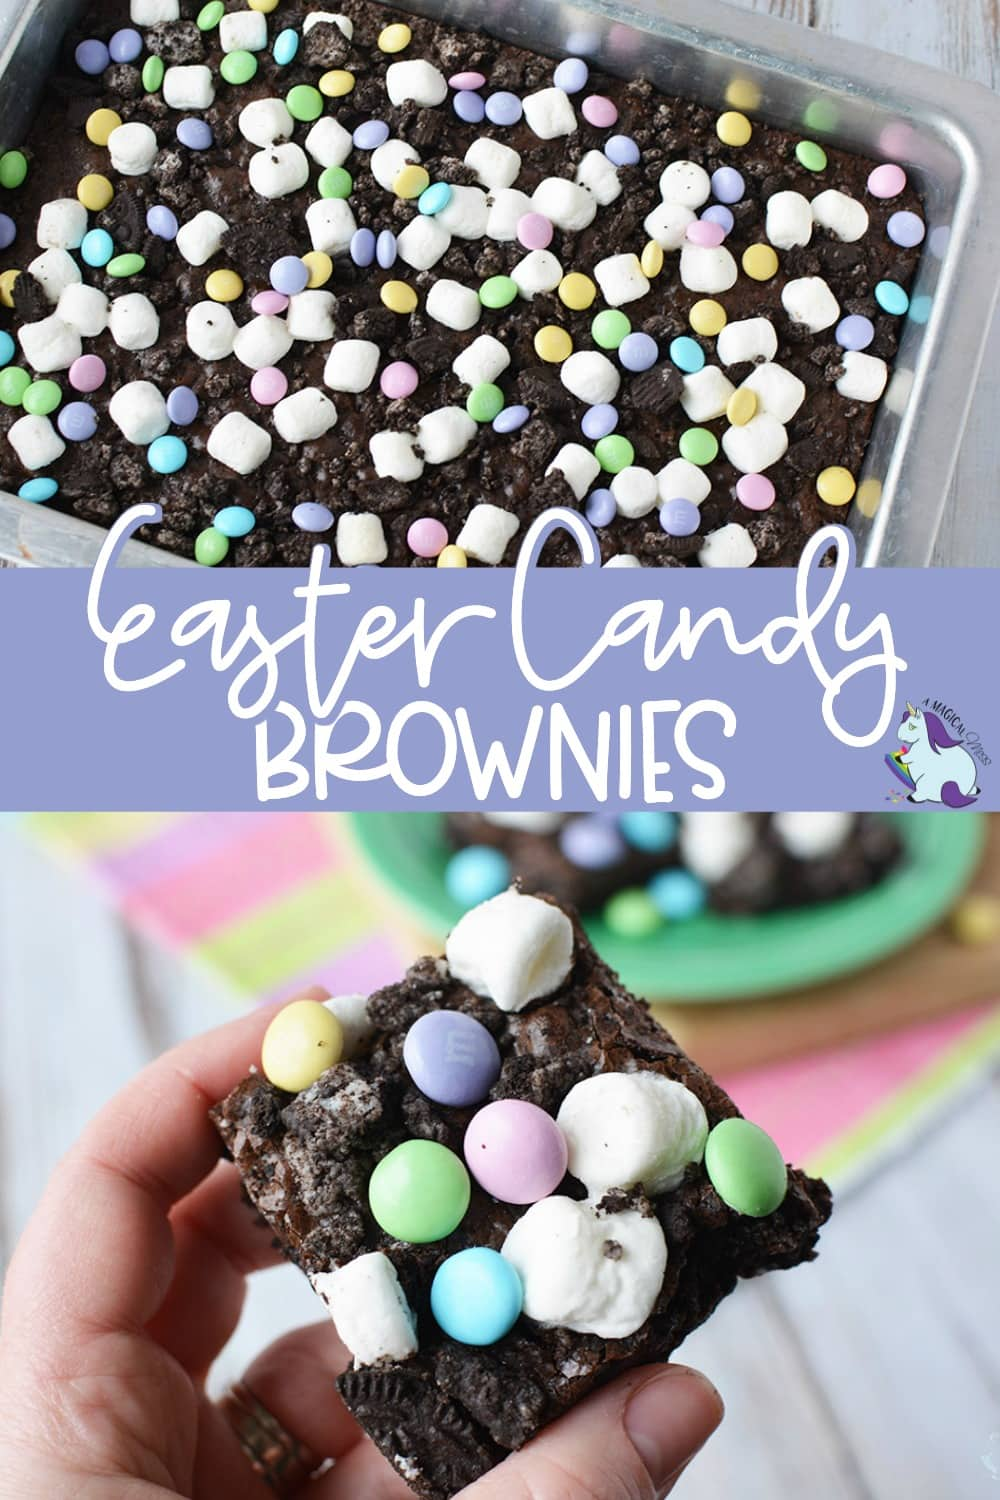 Brownies with Easter candy